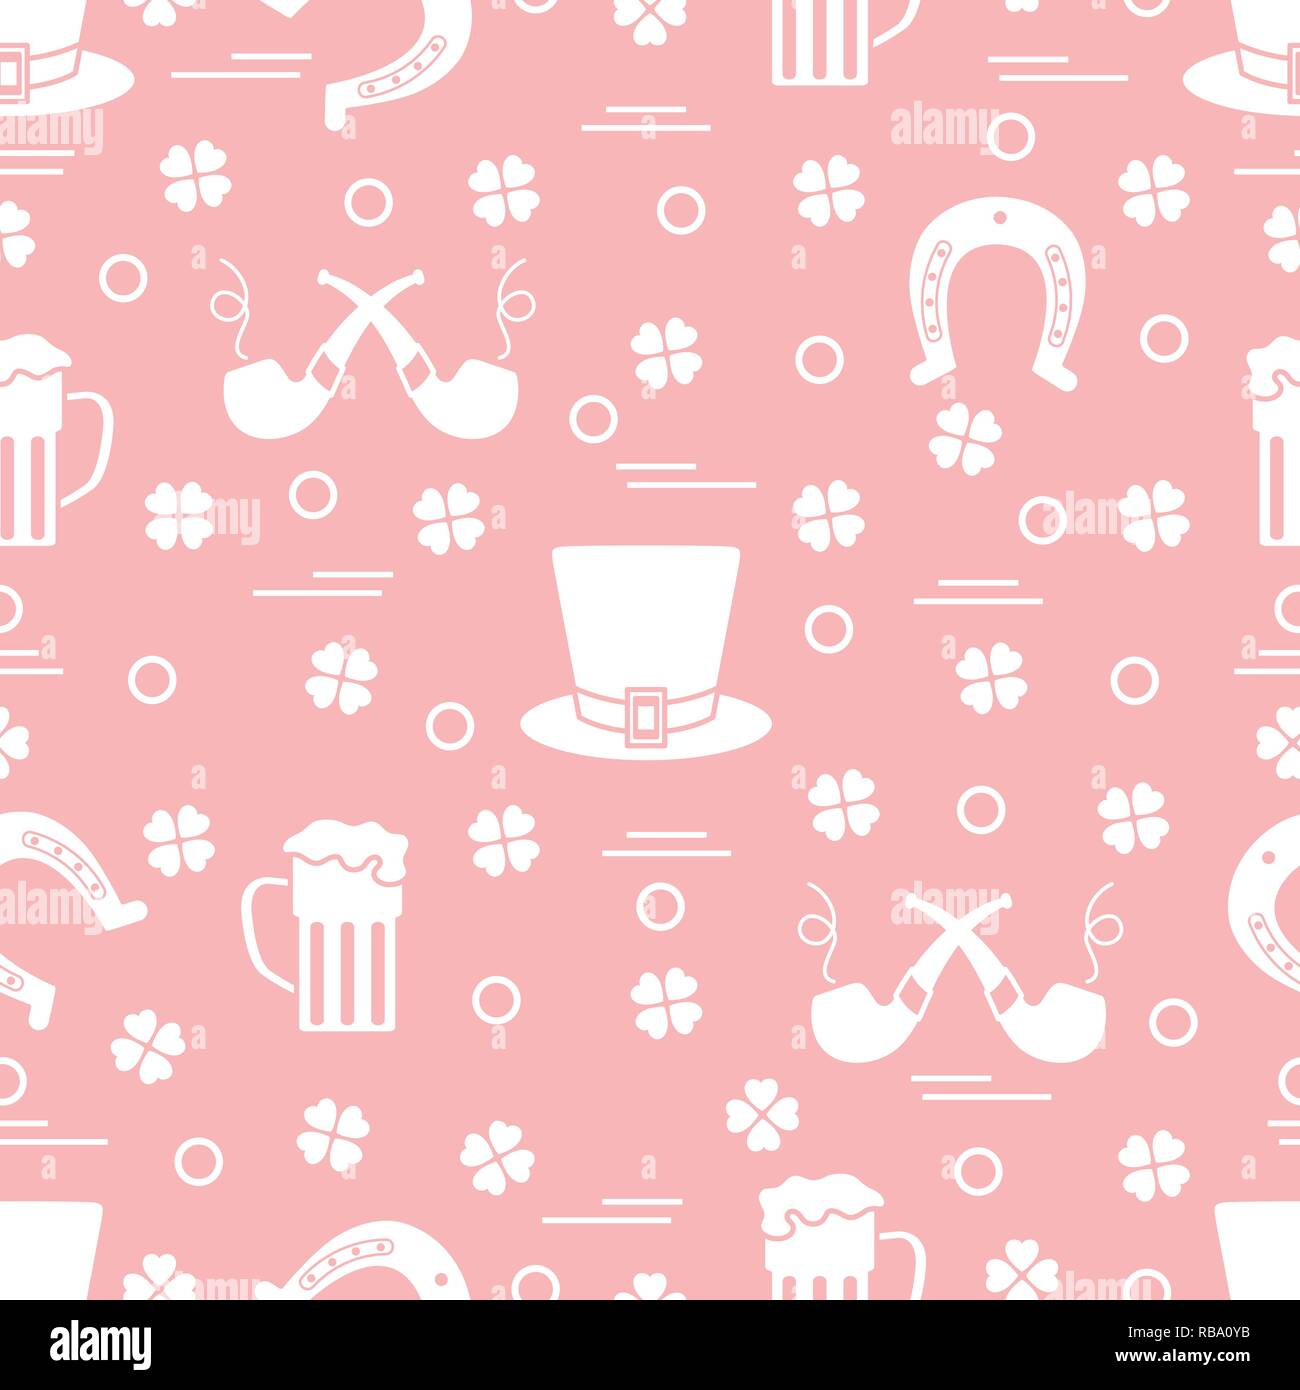 Seamless Pattern With Clover Leaves Horseshoe Beer Mug